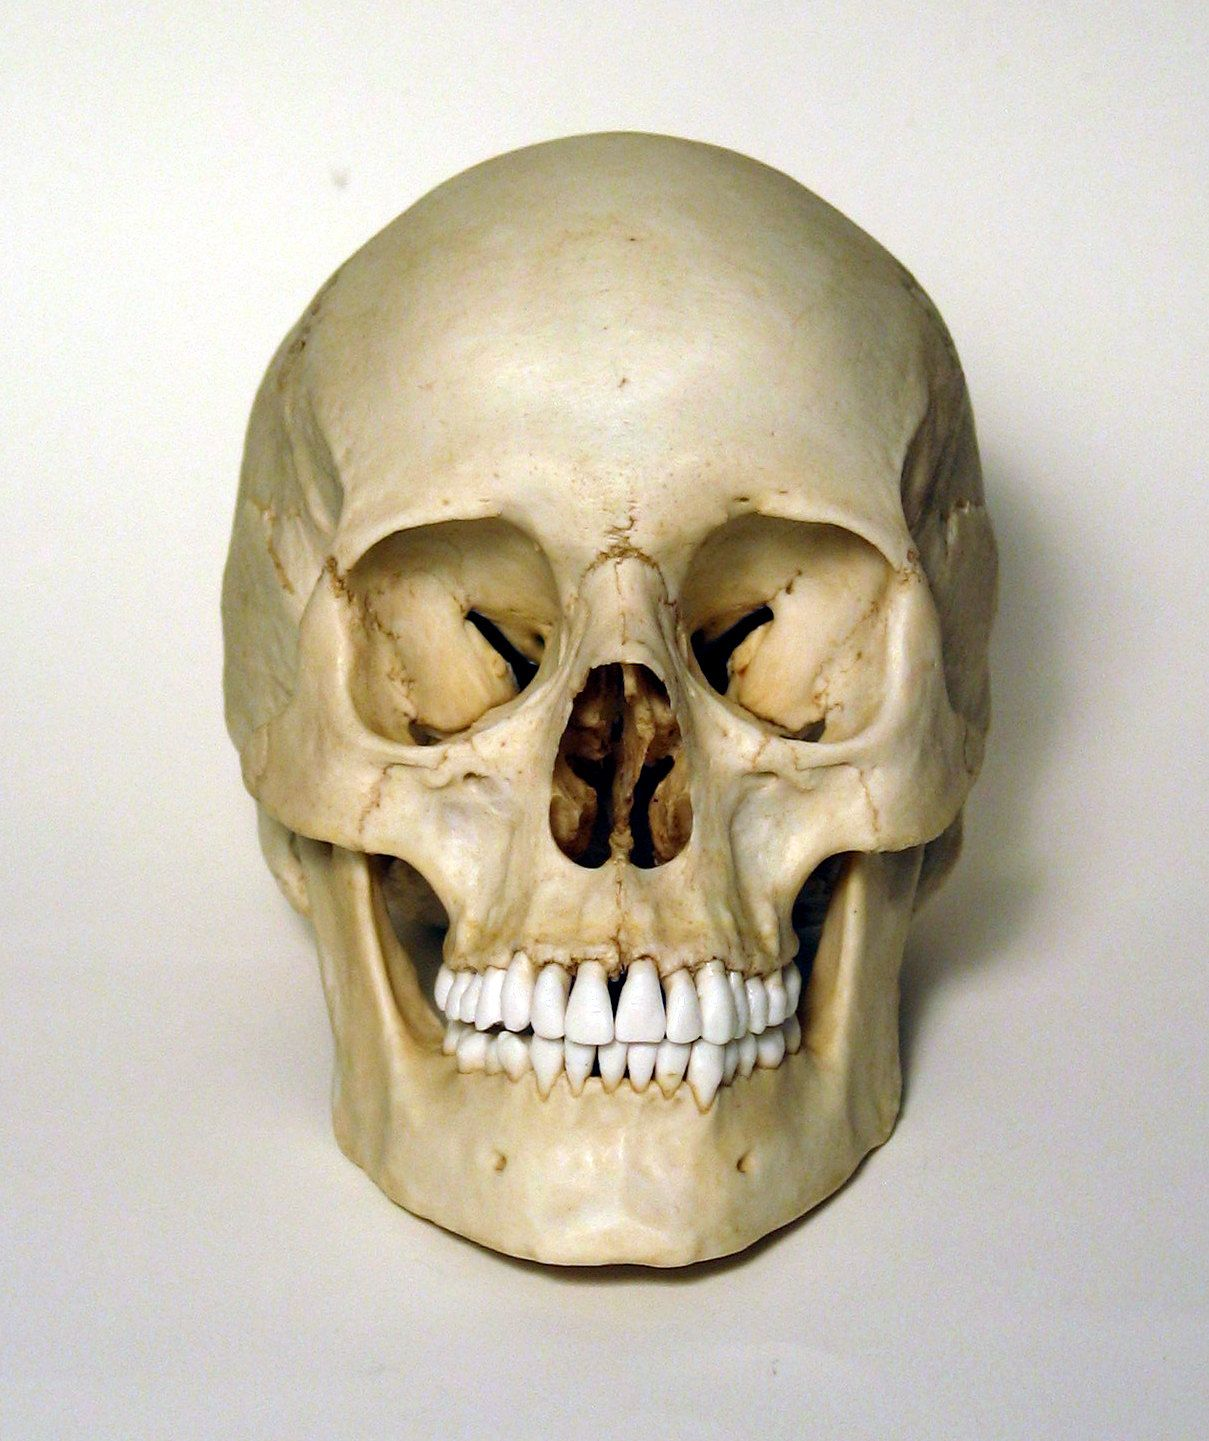 Female human skull replica skulls and bones pinterest human female human skull frontal view photo ccuart Images